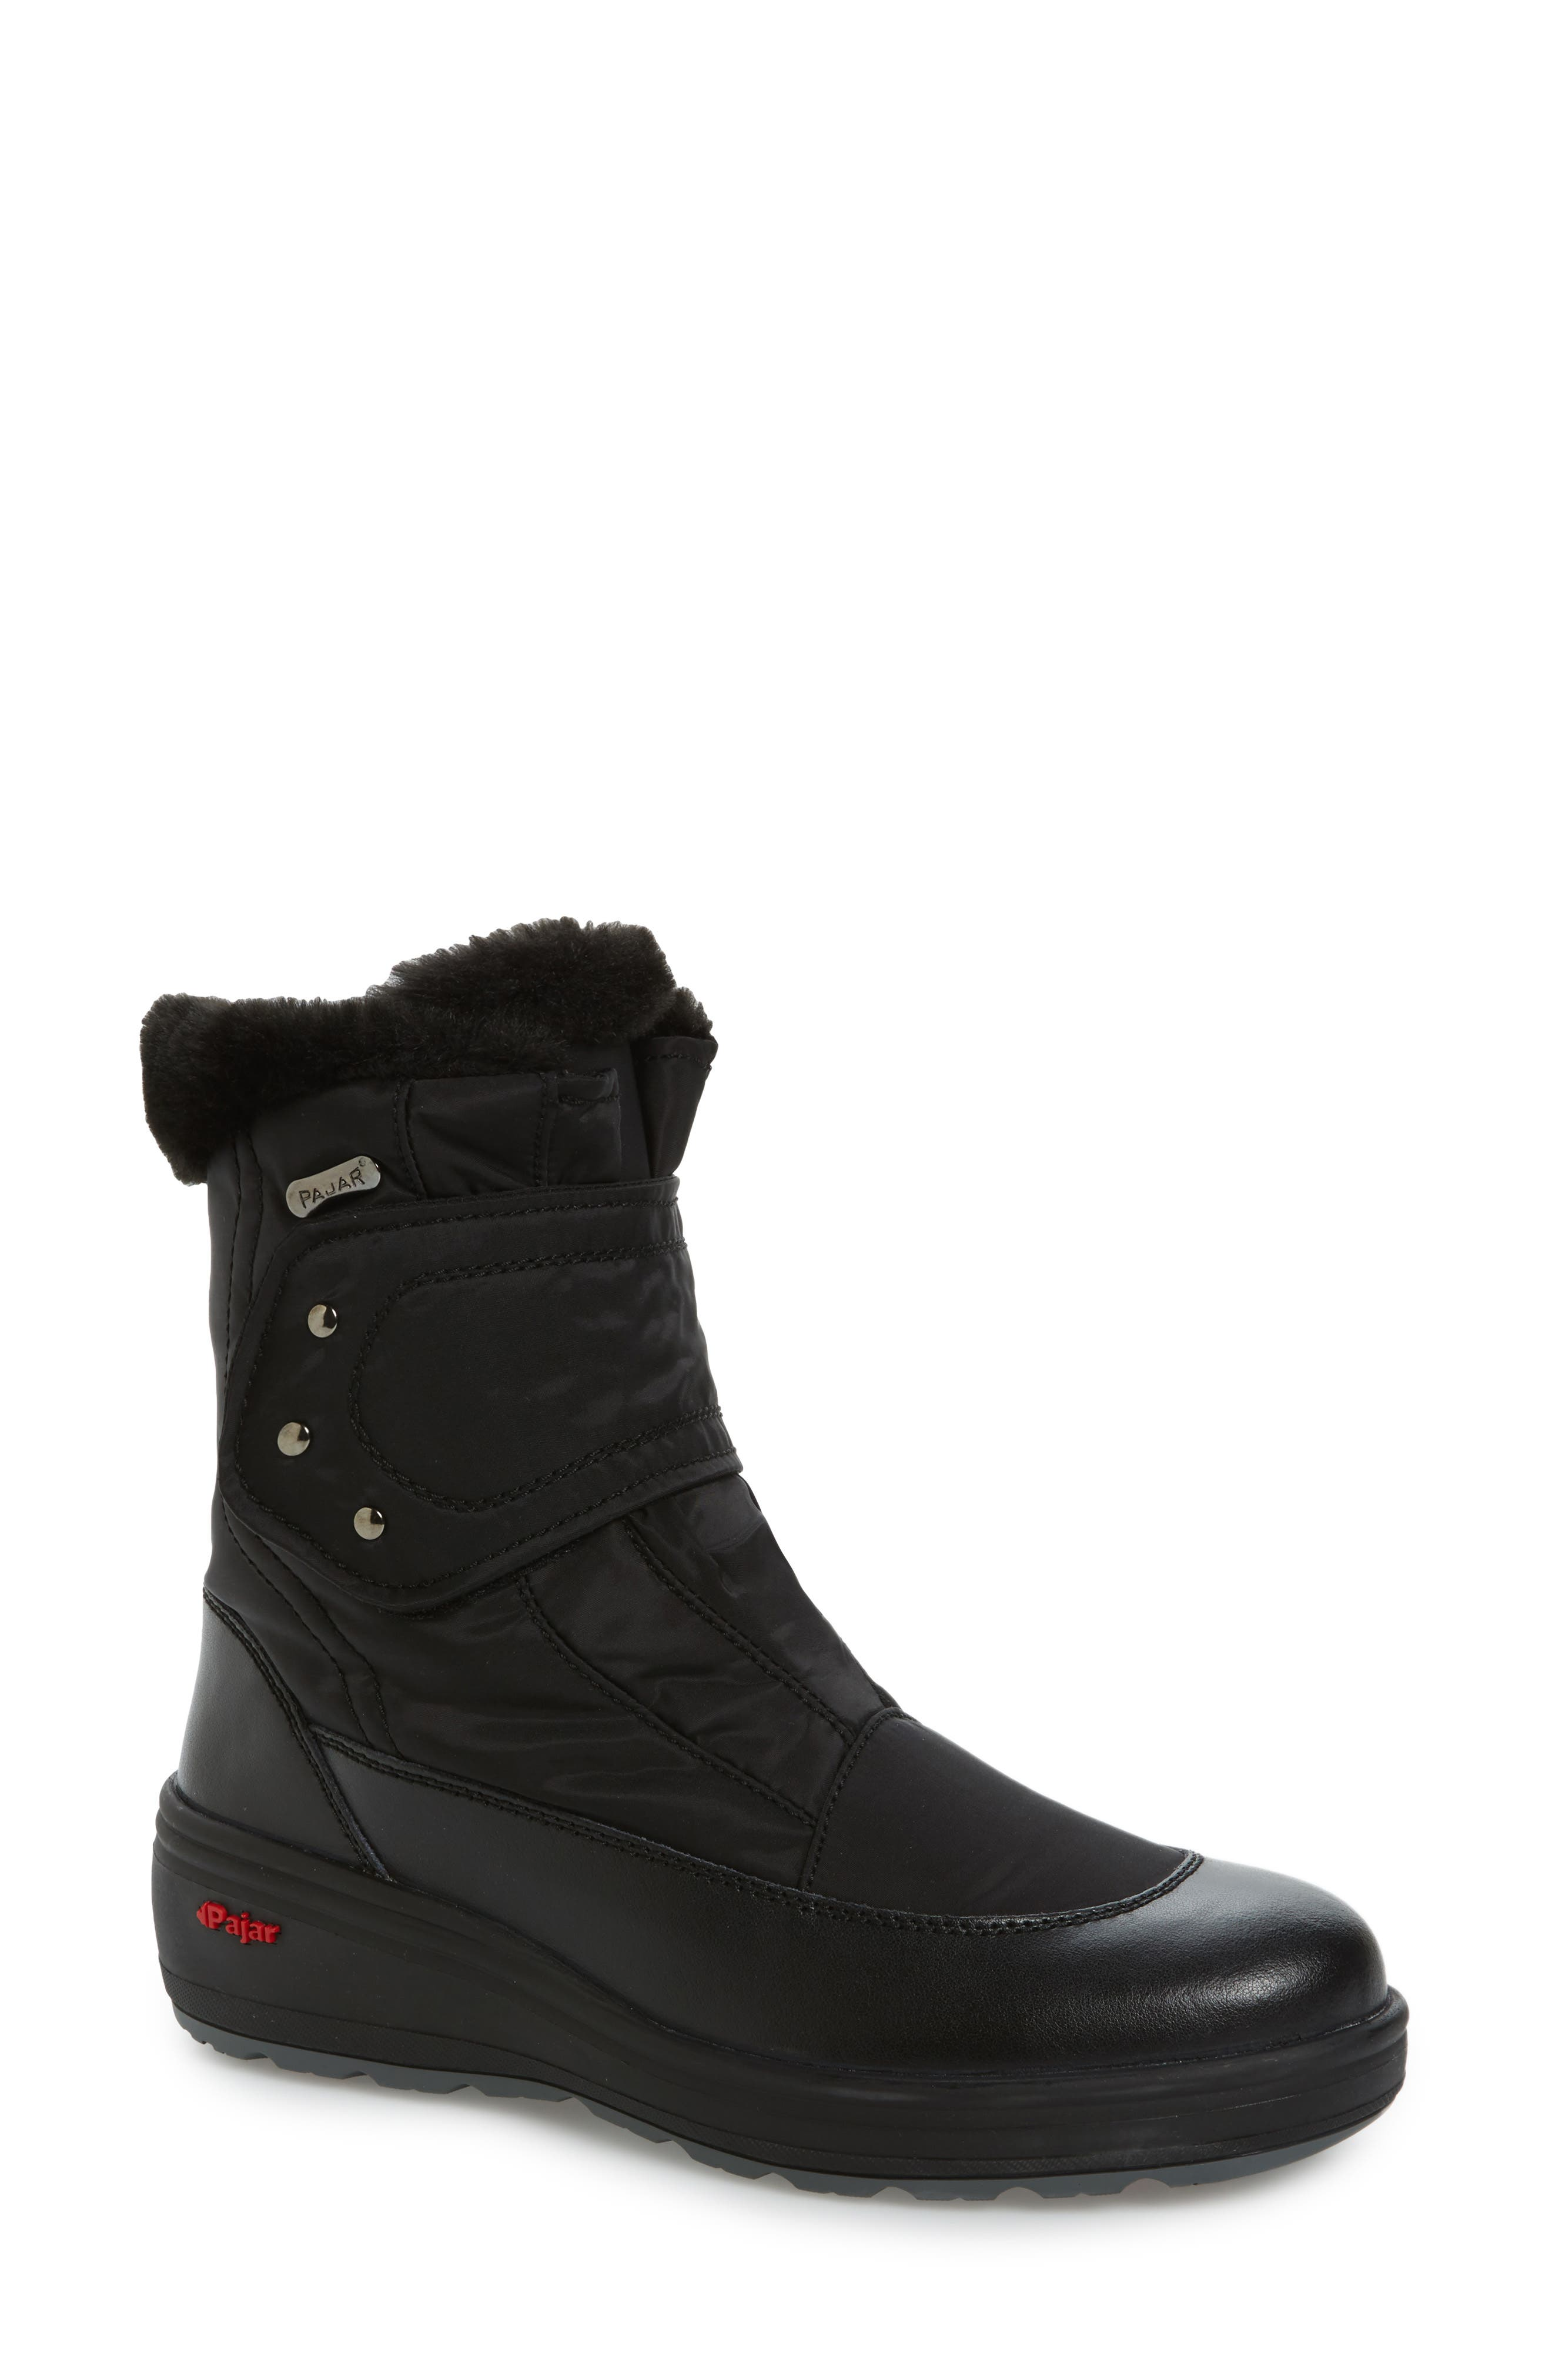 Samara Waterproof Insulated Boot with Faux Fur Lining,                         Main,                         color, Black Leather